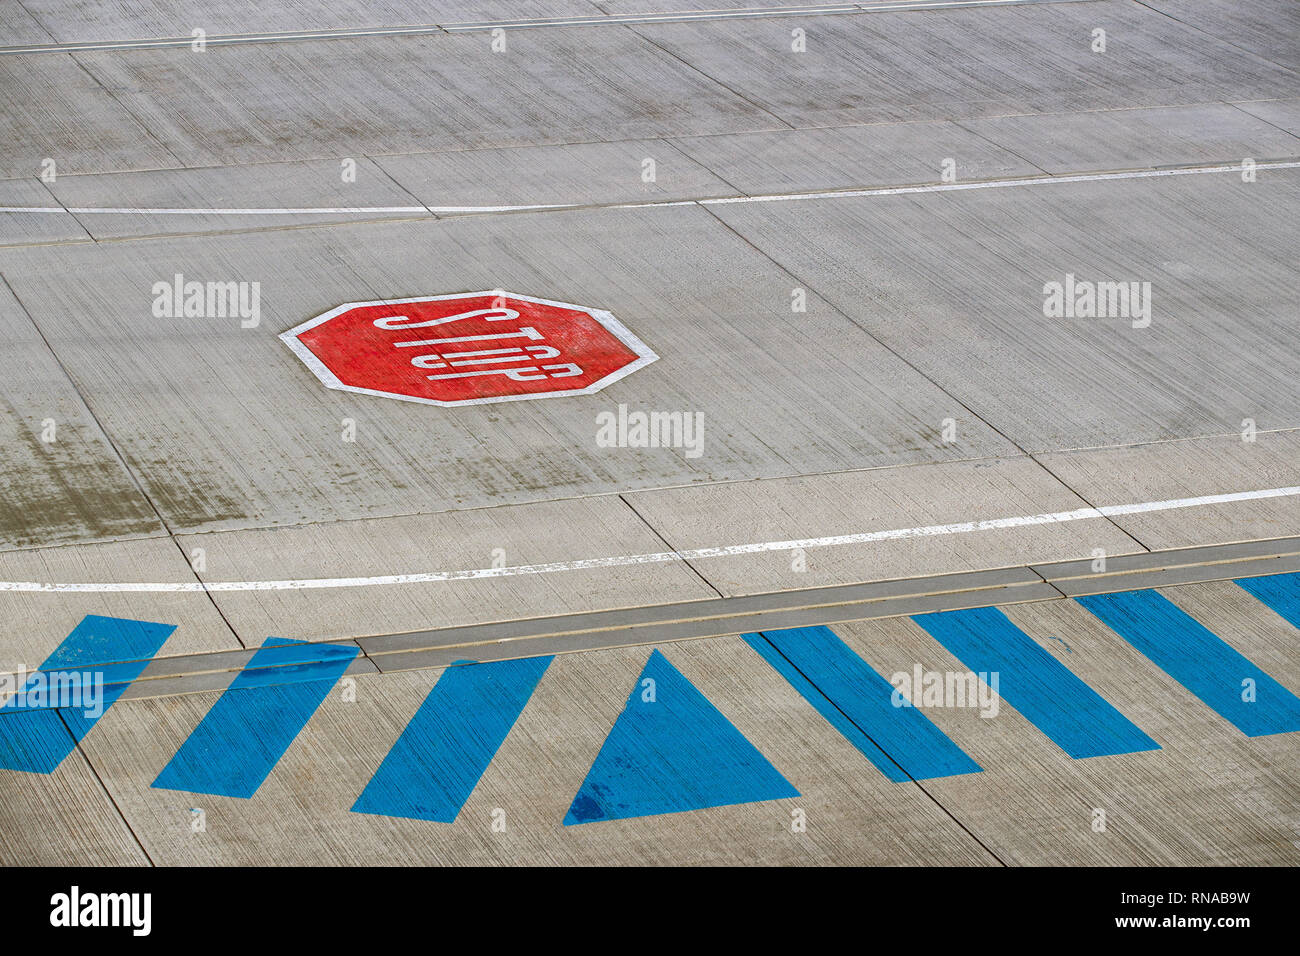 Laage, Germany. 18th Feb, 2019. A stop sign on the apron of the airport Rostock-Laage. Following the insolvency of the British regional airline Flybmi and the holiday airline Germania, the airport's shareholders are discussing the economic situation. For the airport Rostock-Laage the Flybmi flights to Munich were the last regular connections. Credit: Jens Büttner/dpa-Zentralbild/ZB/dpa/Alamy Live News - Stock Image